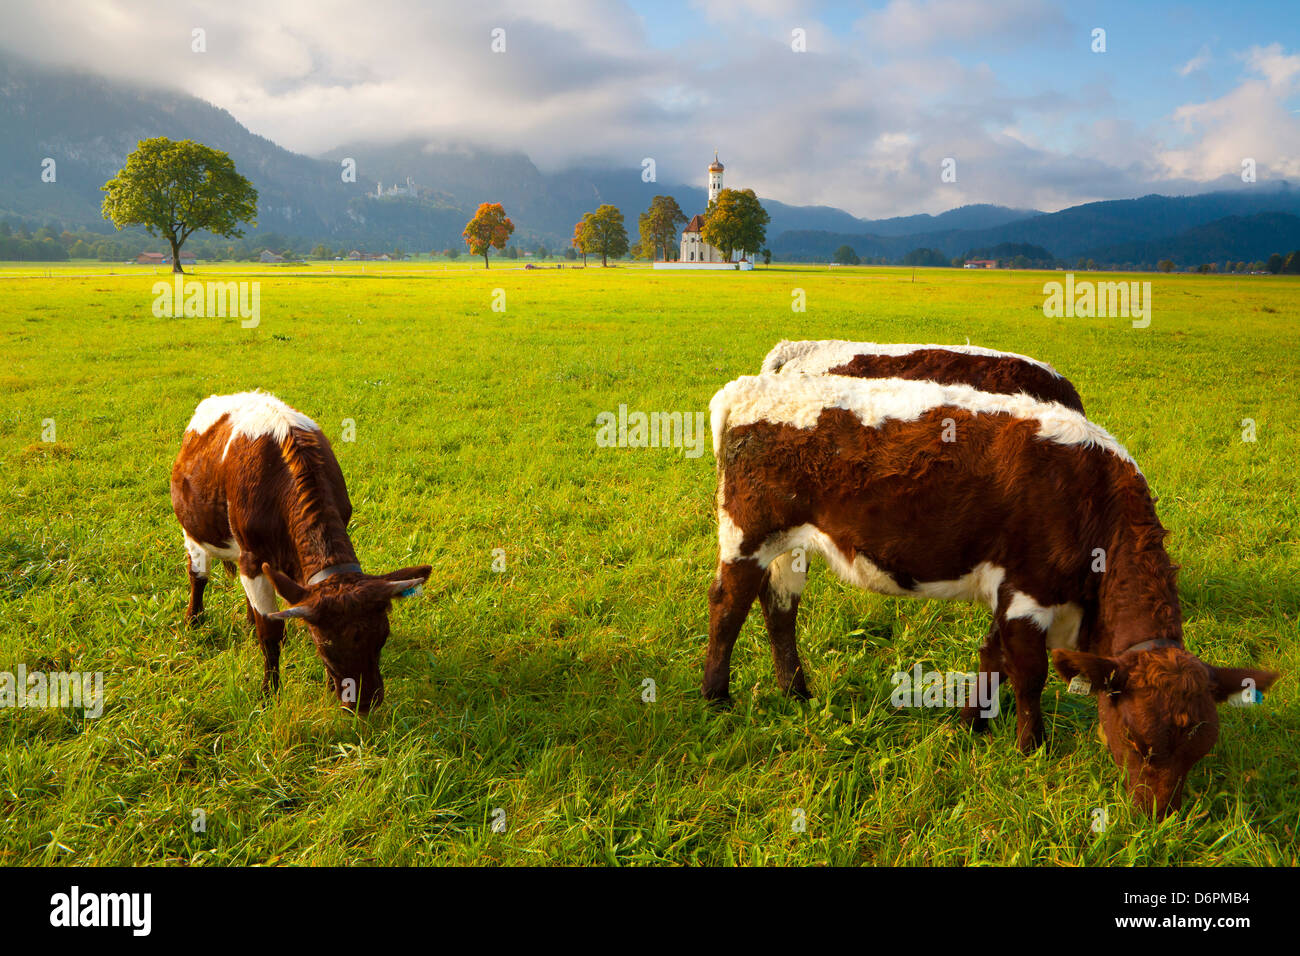 Cattle grazing with Saint Koloman Church and Neuschwanstein Castle in the background, near Fussen, Bavaria, Germany, - Stock Image